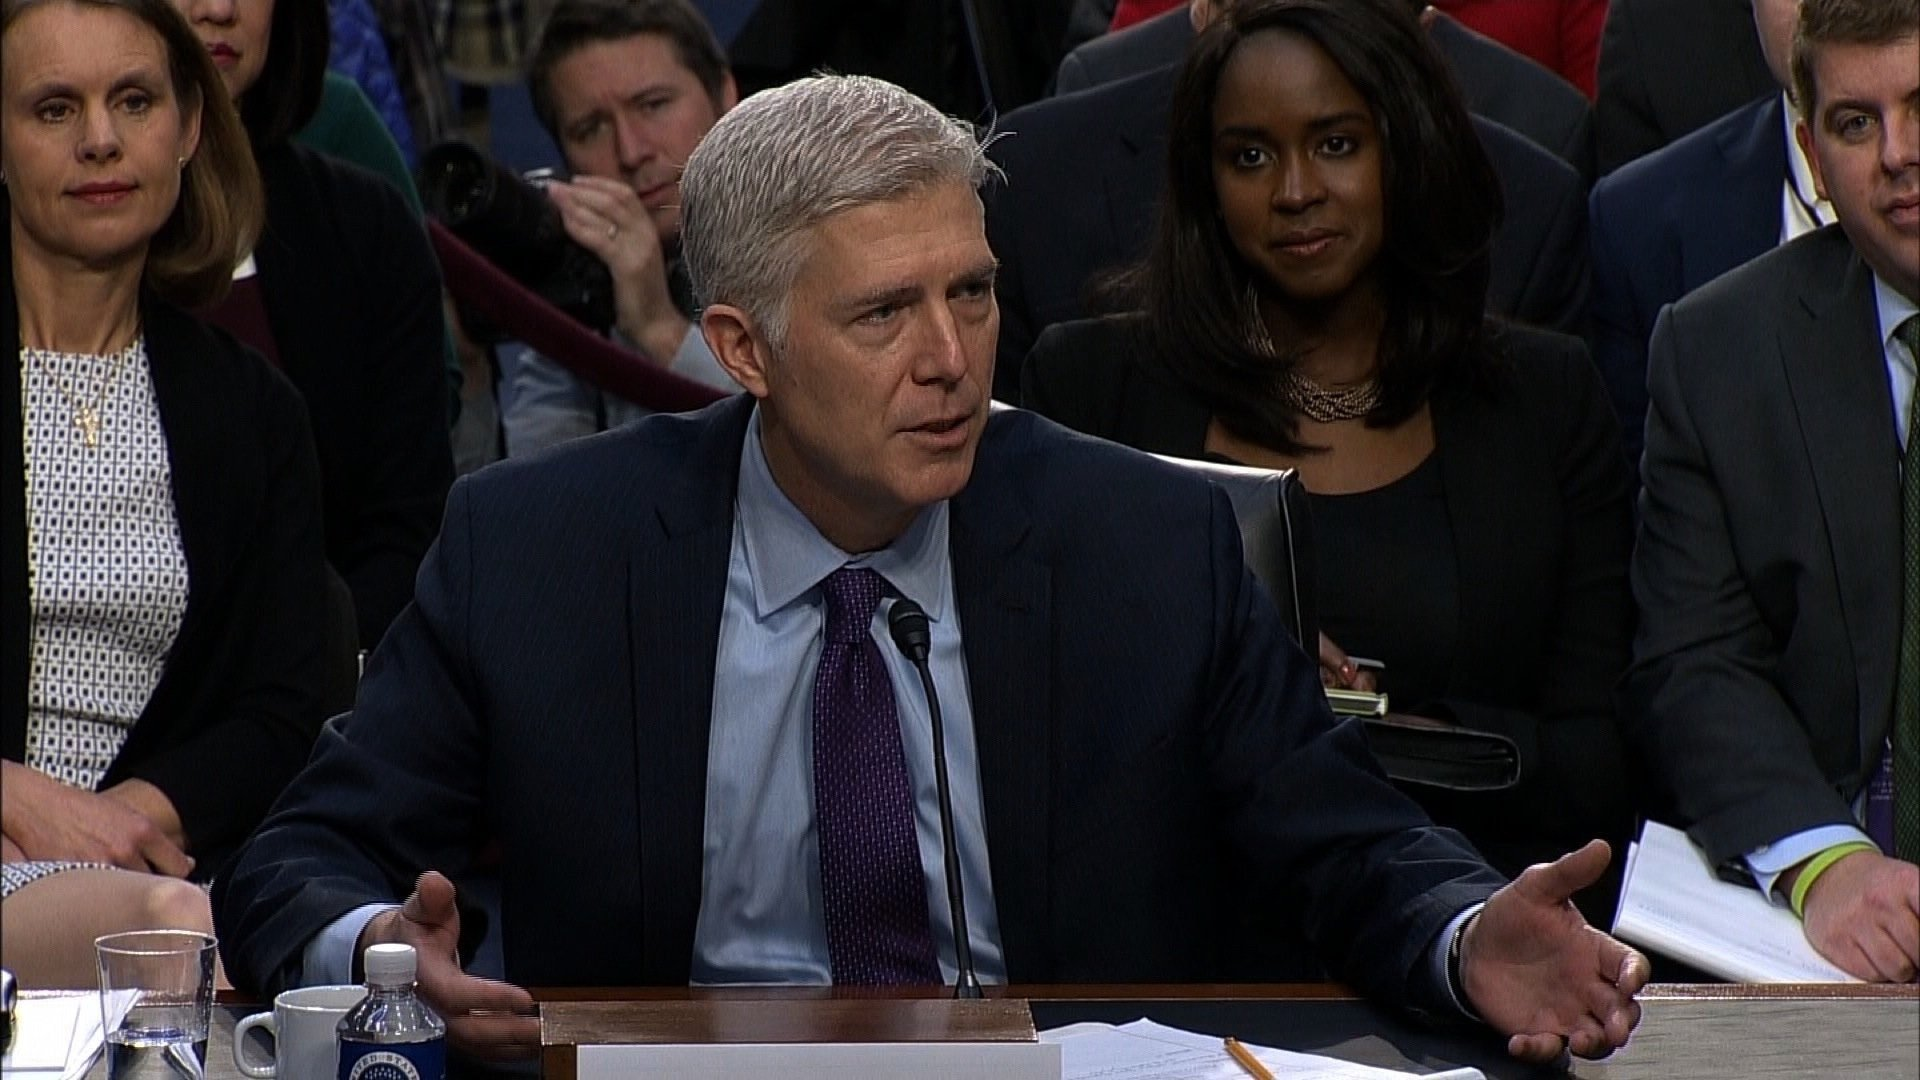 Two Democrats will vote to confirm Supreme Court nominee Neil Gorsuch